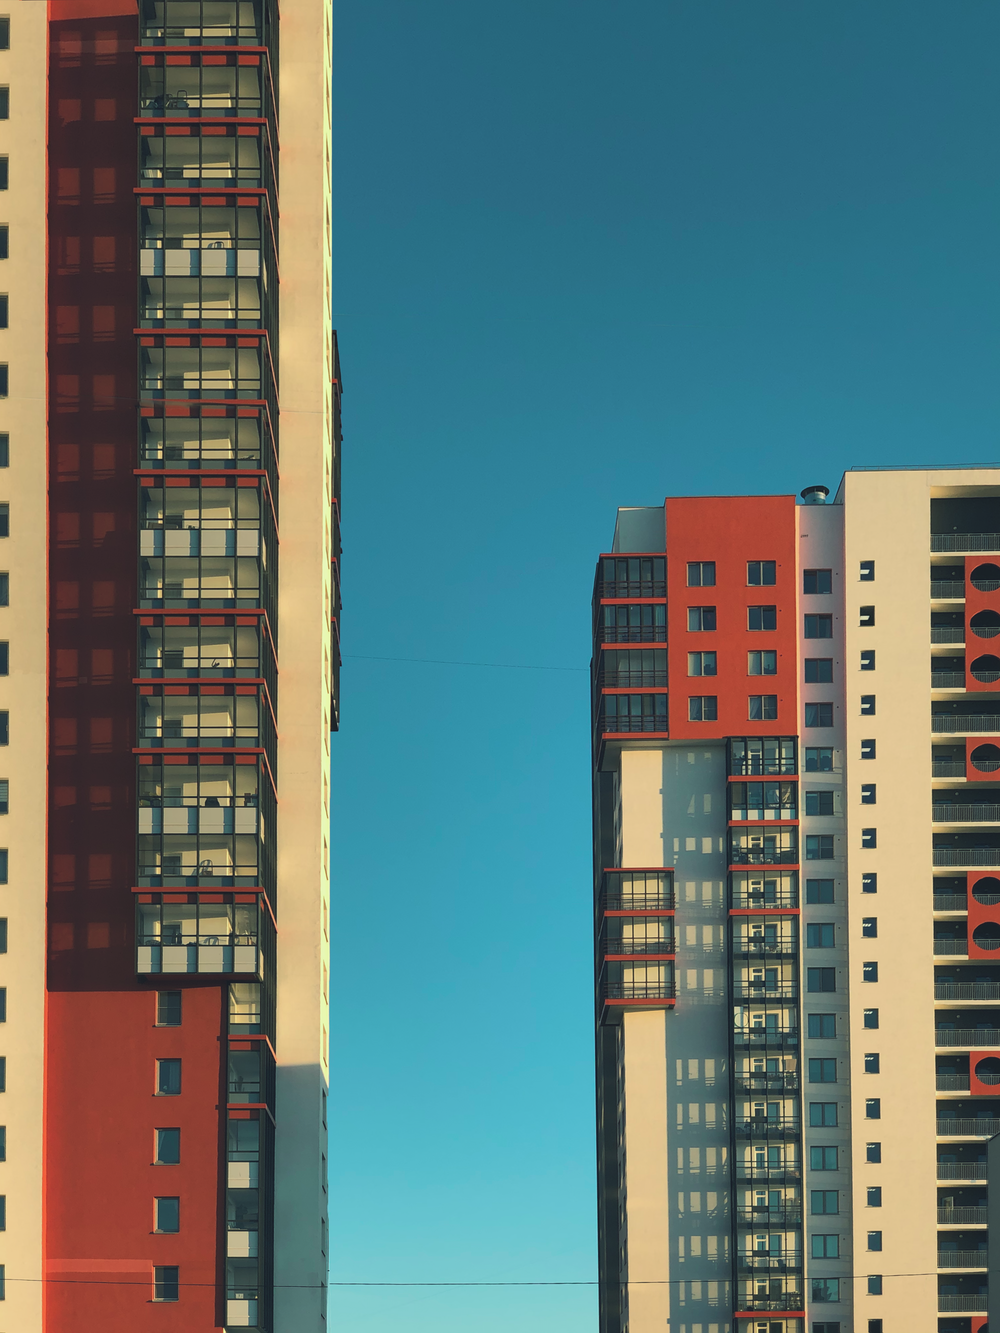 red and white concrete building under blue sky during daytime